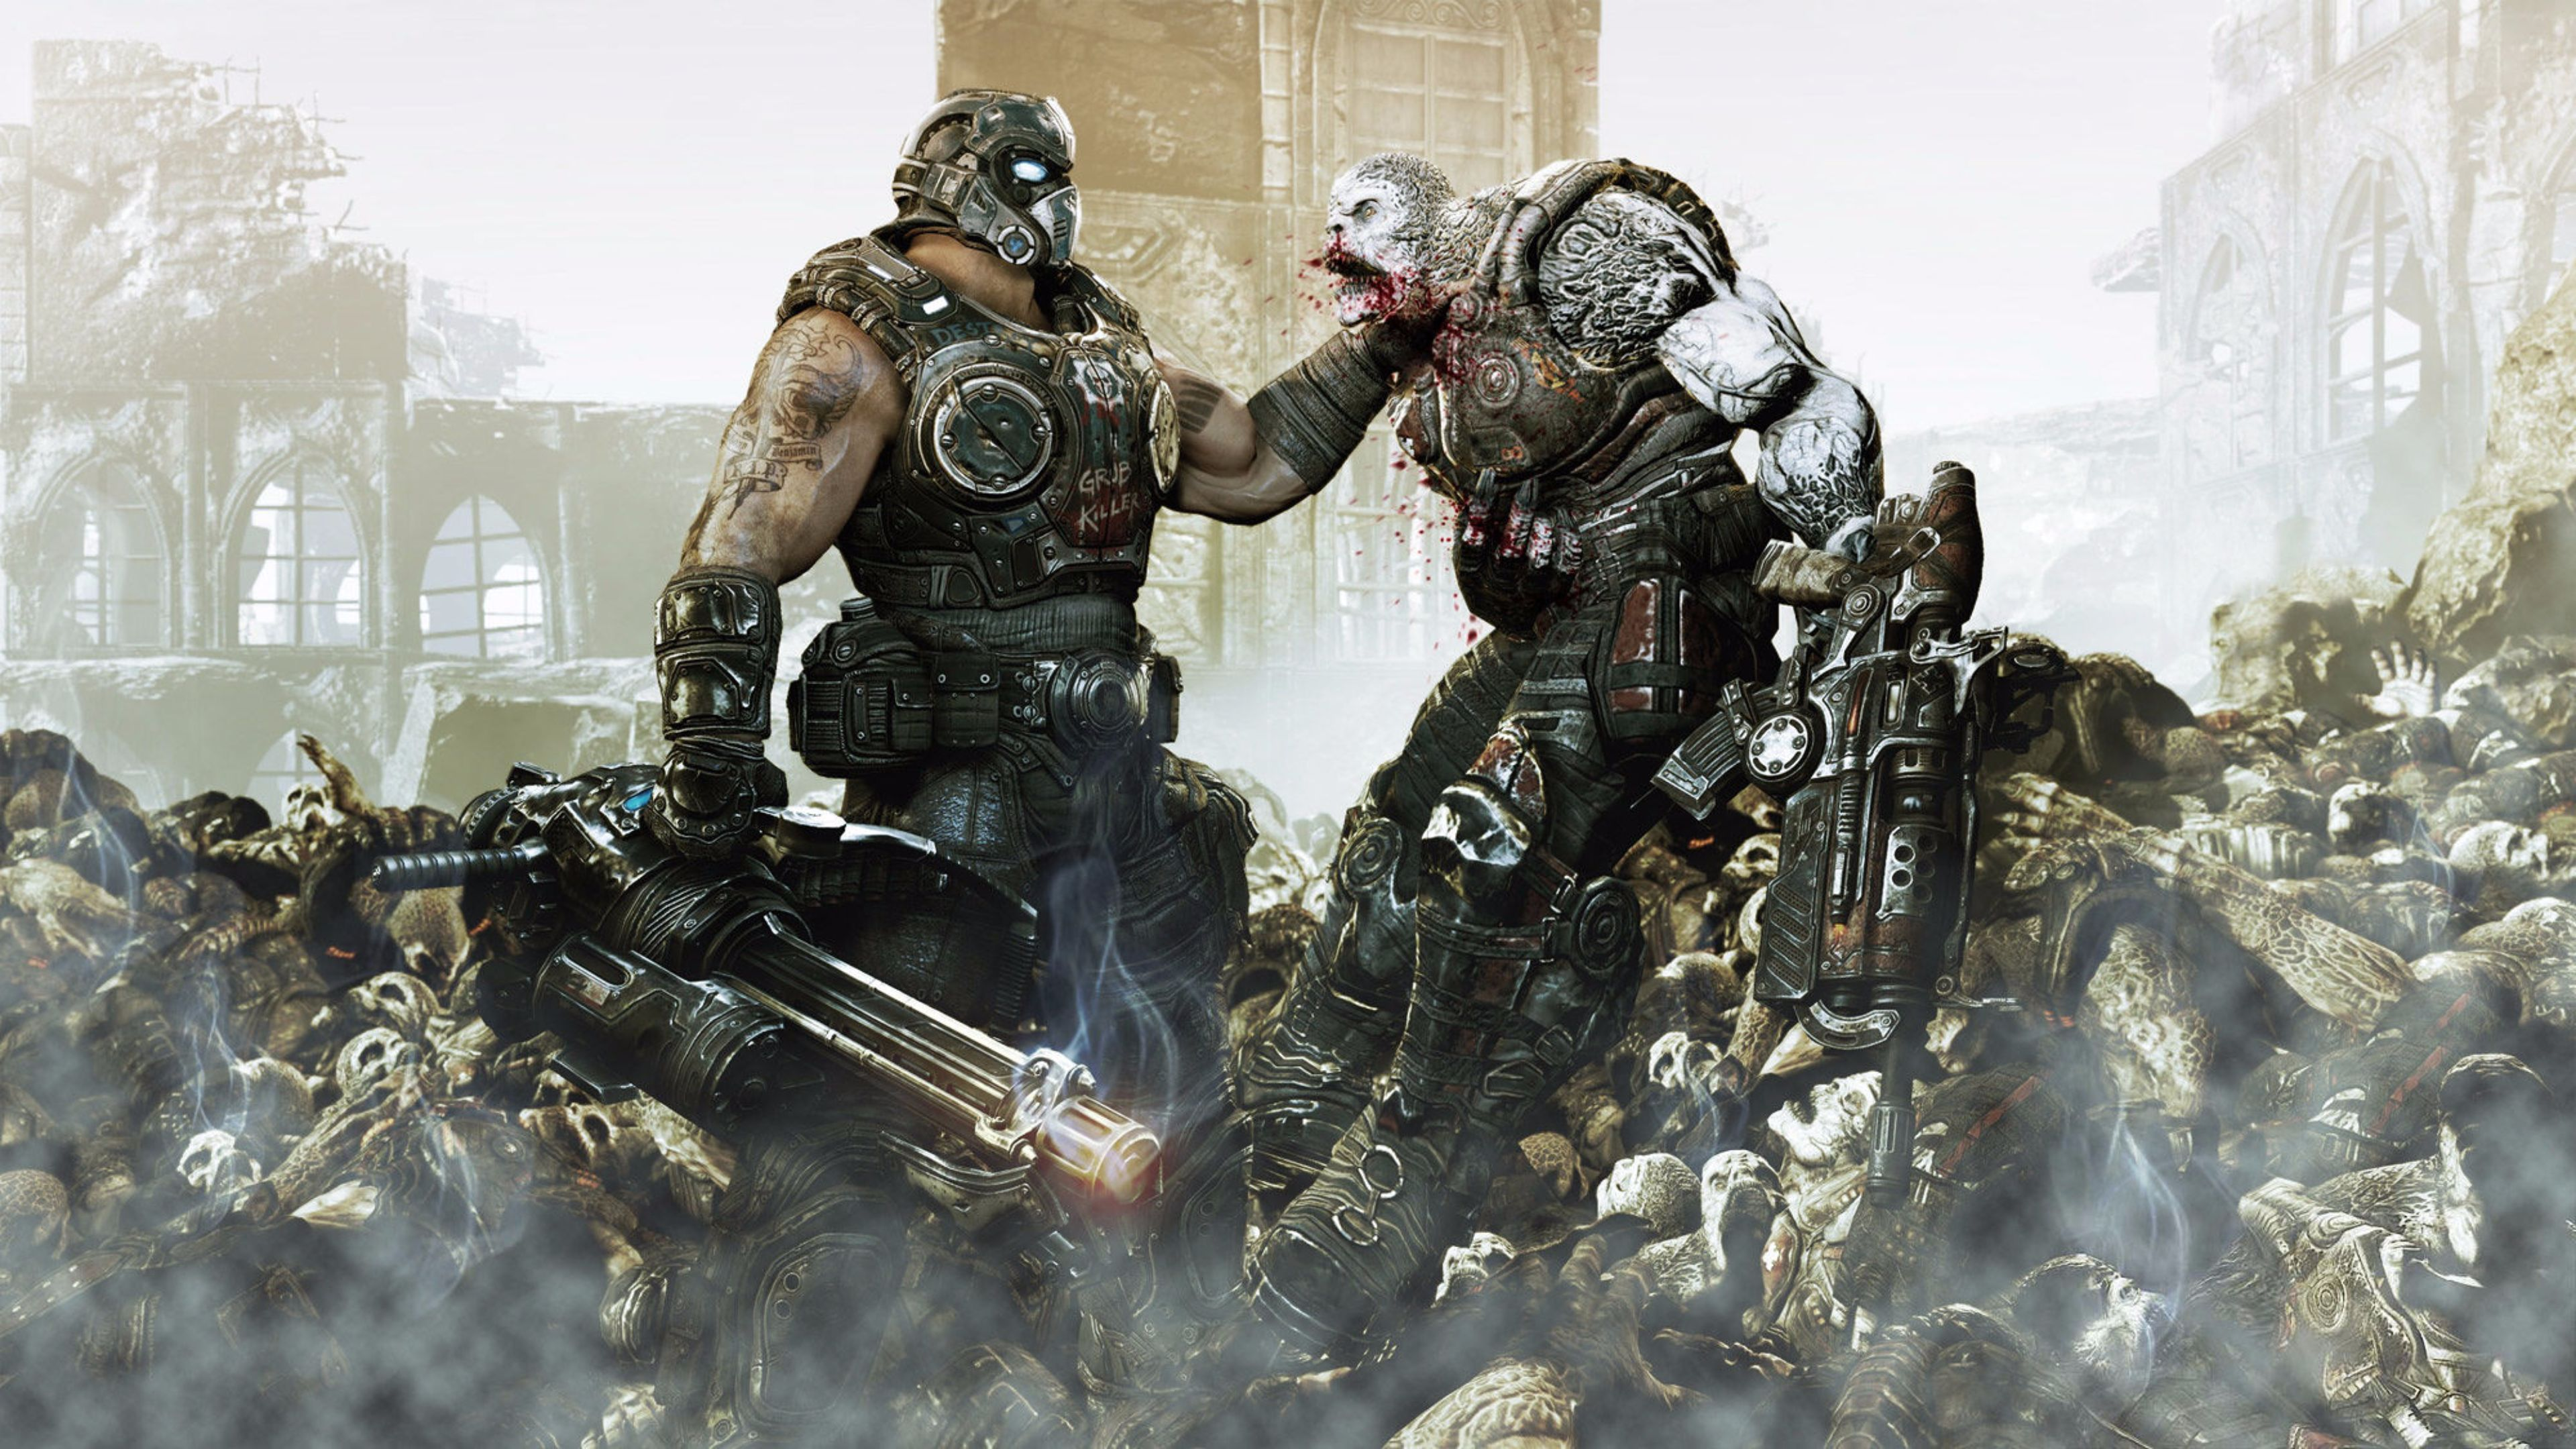 Gears of War 4 Full hd wallpapers